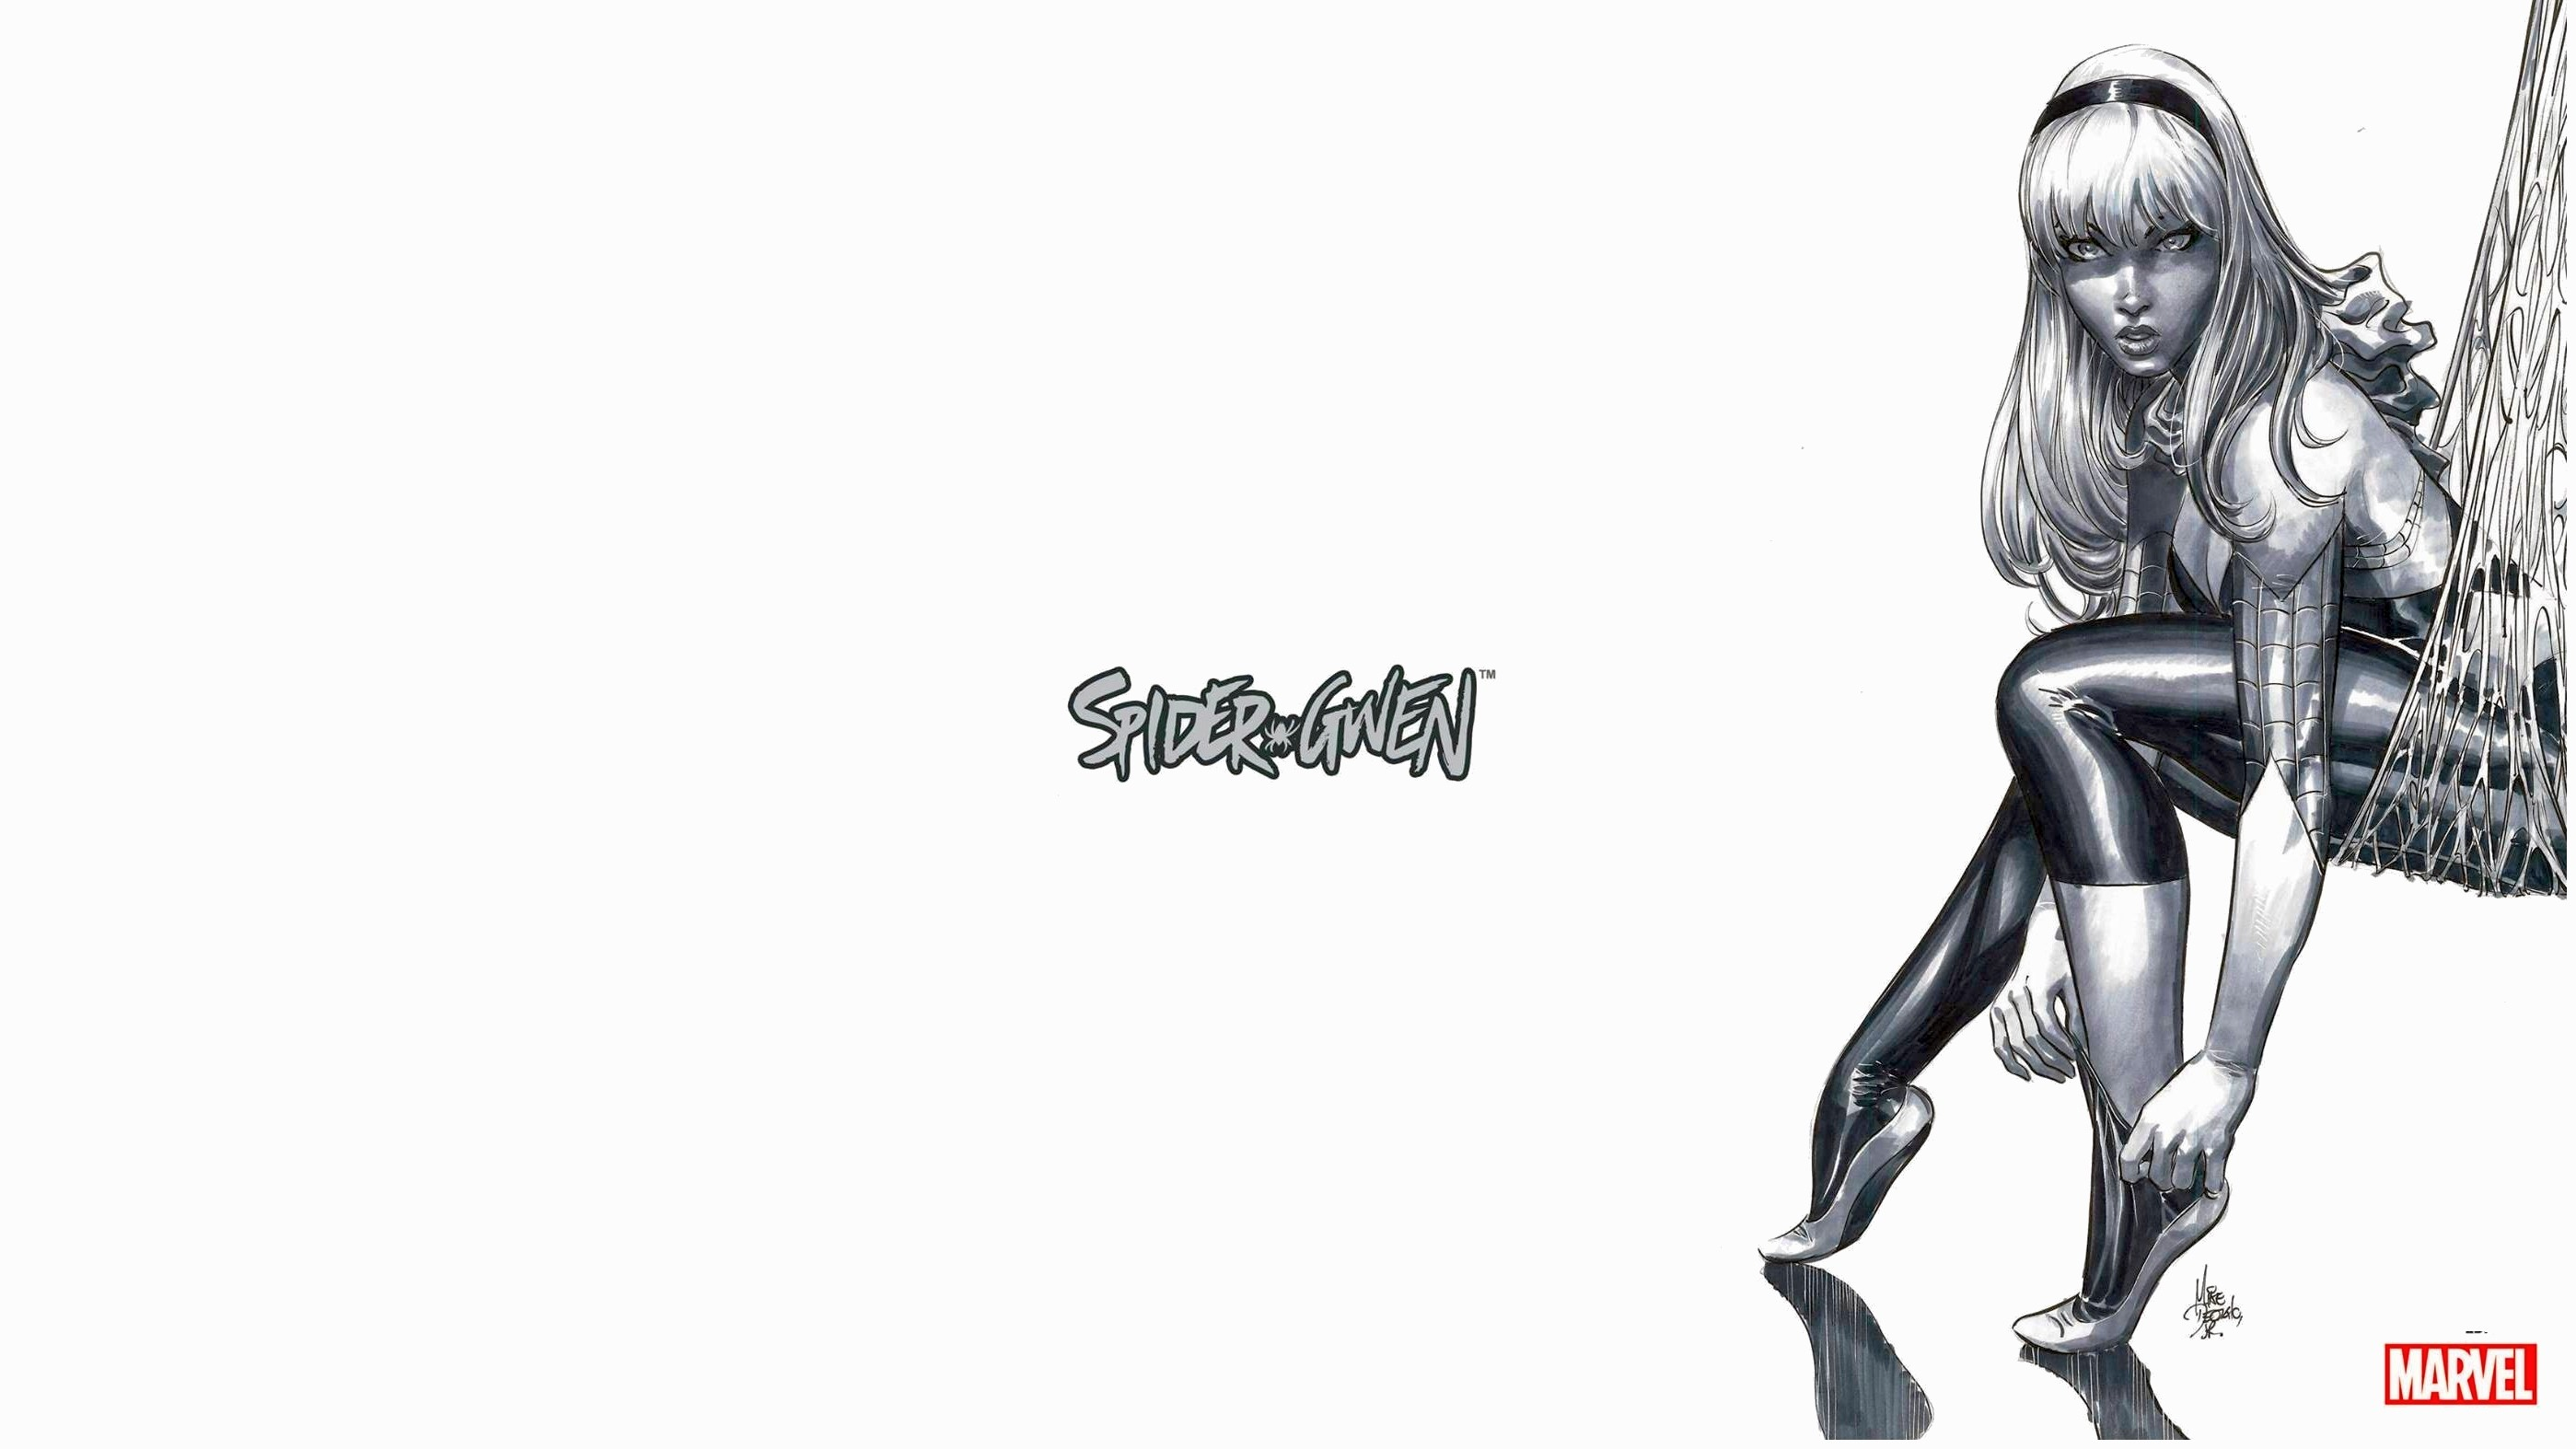 Spider Gwen Wallpapers 73 Images